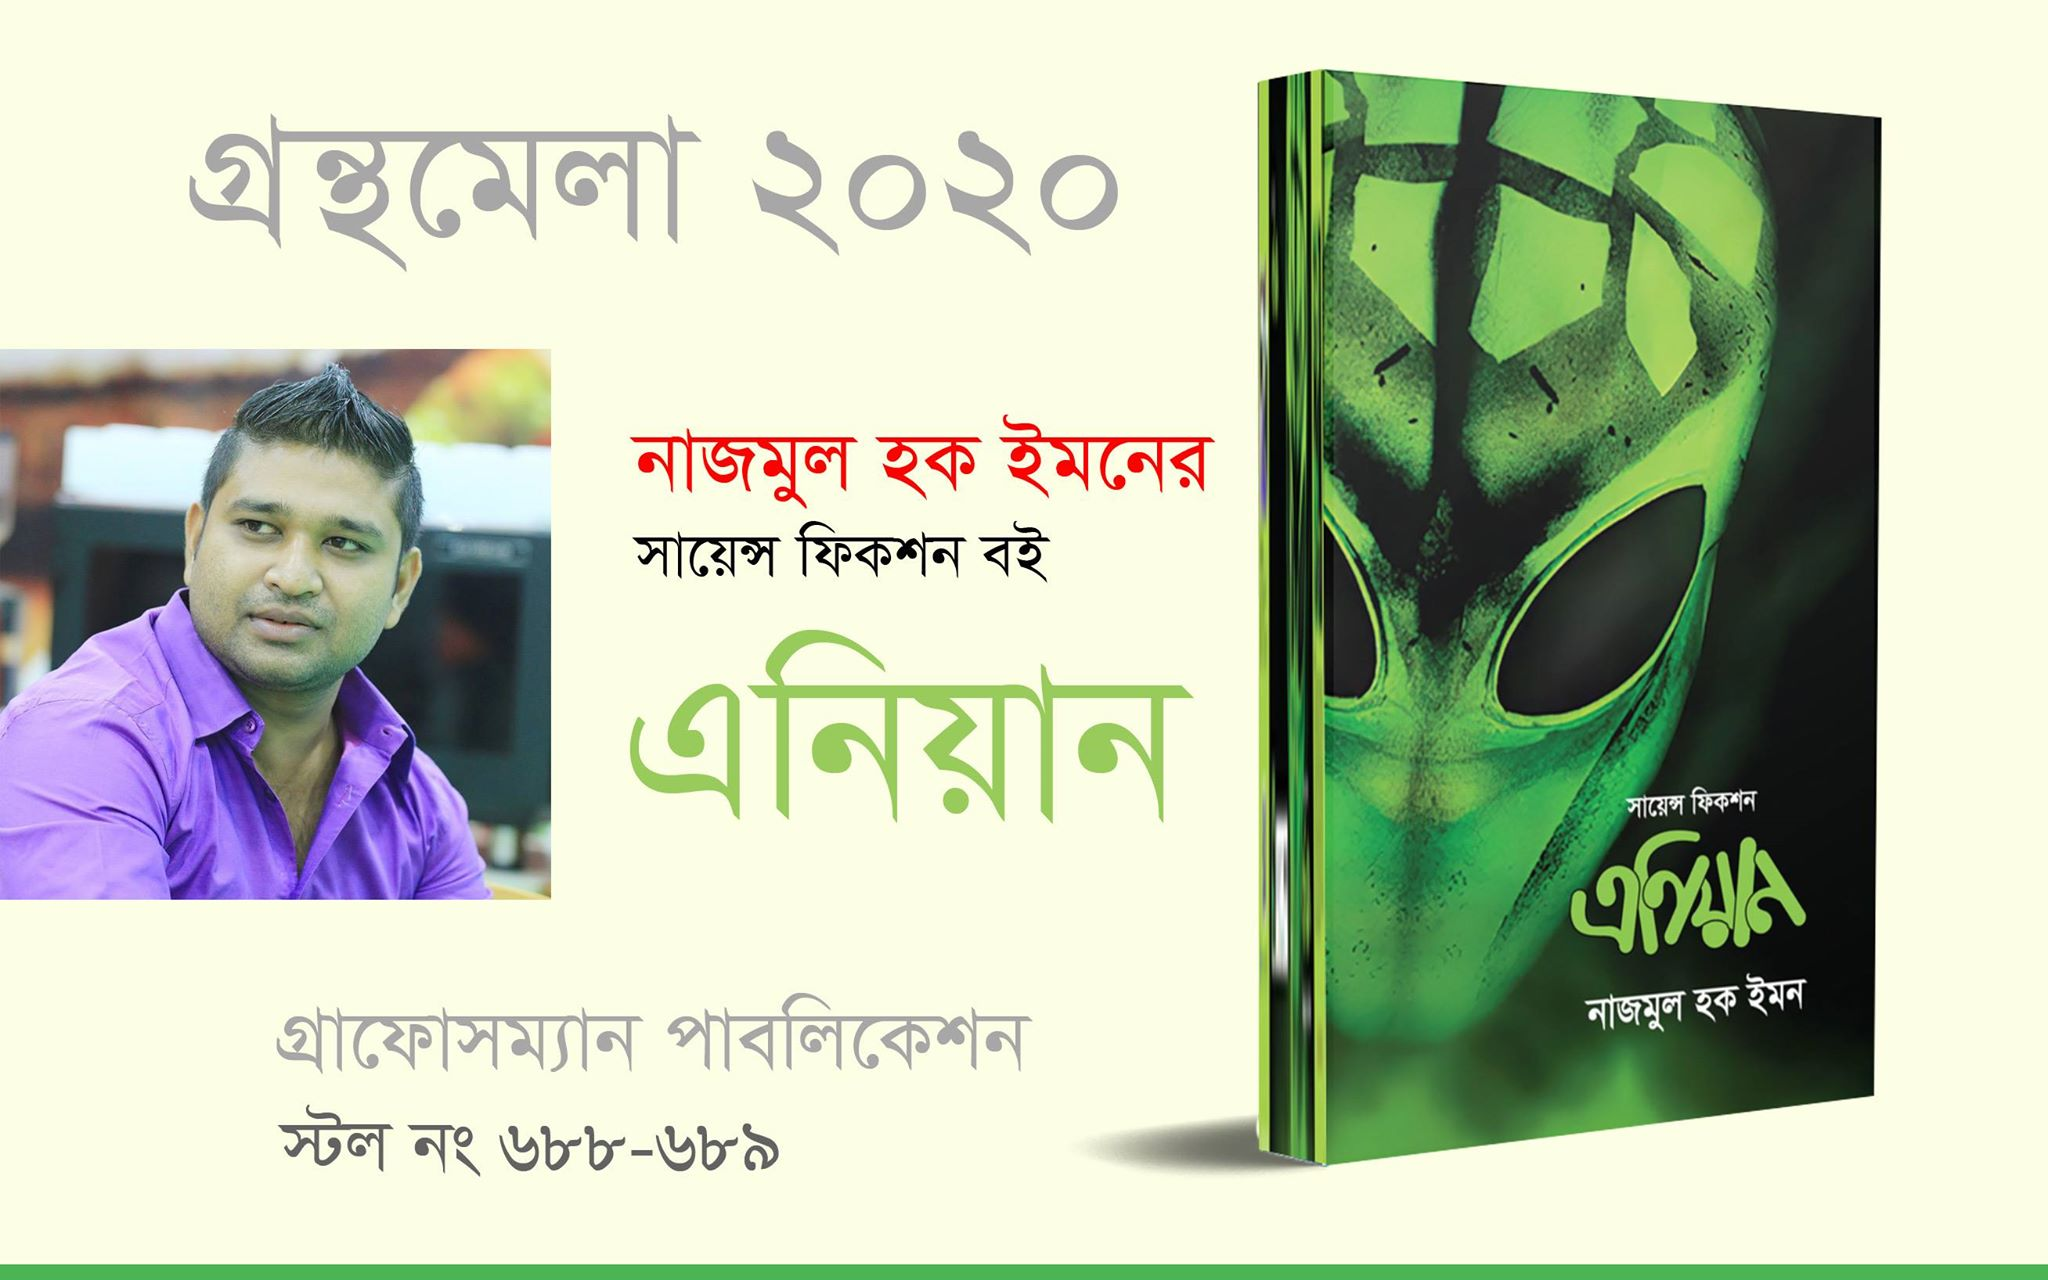 Science fiction 'Anian' by Najmul Haque Emon hits at Book Fair